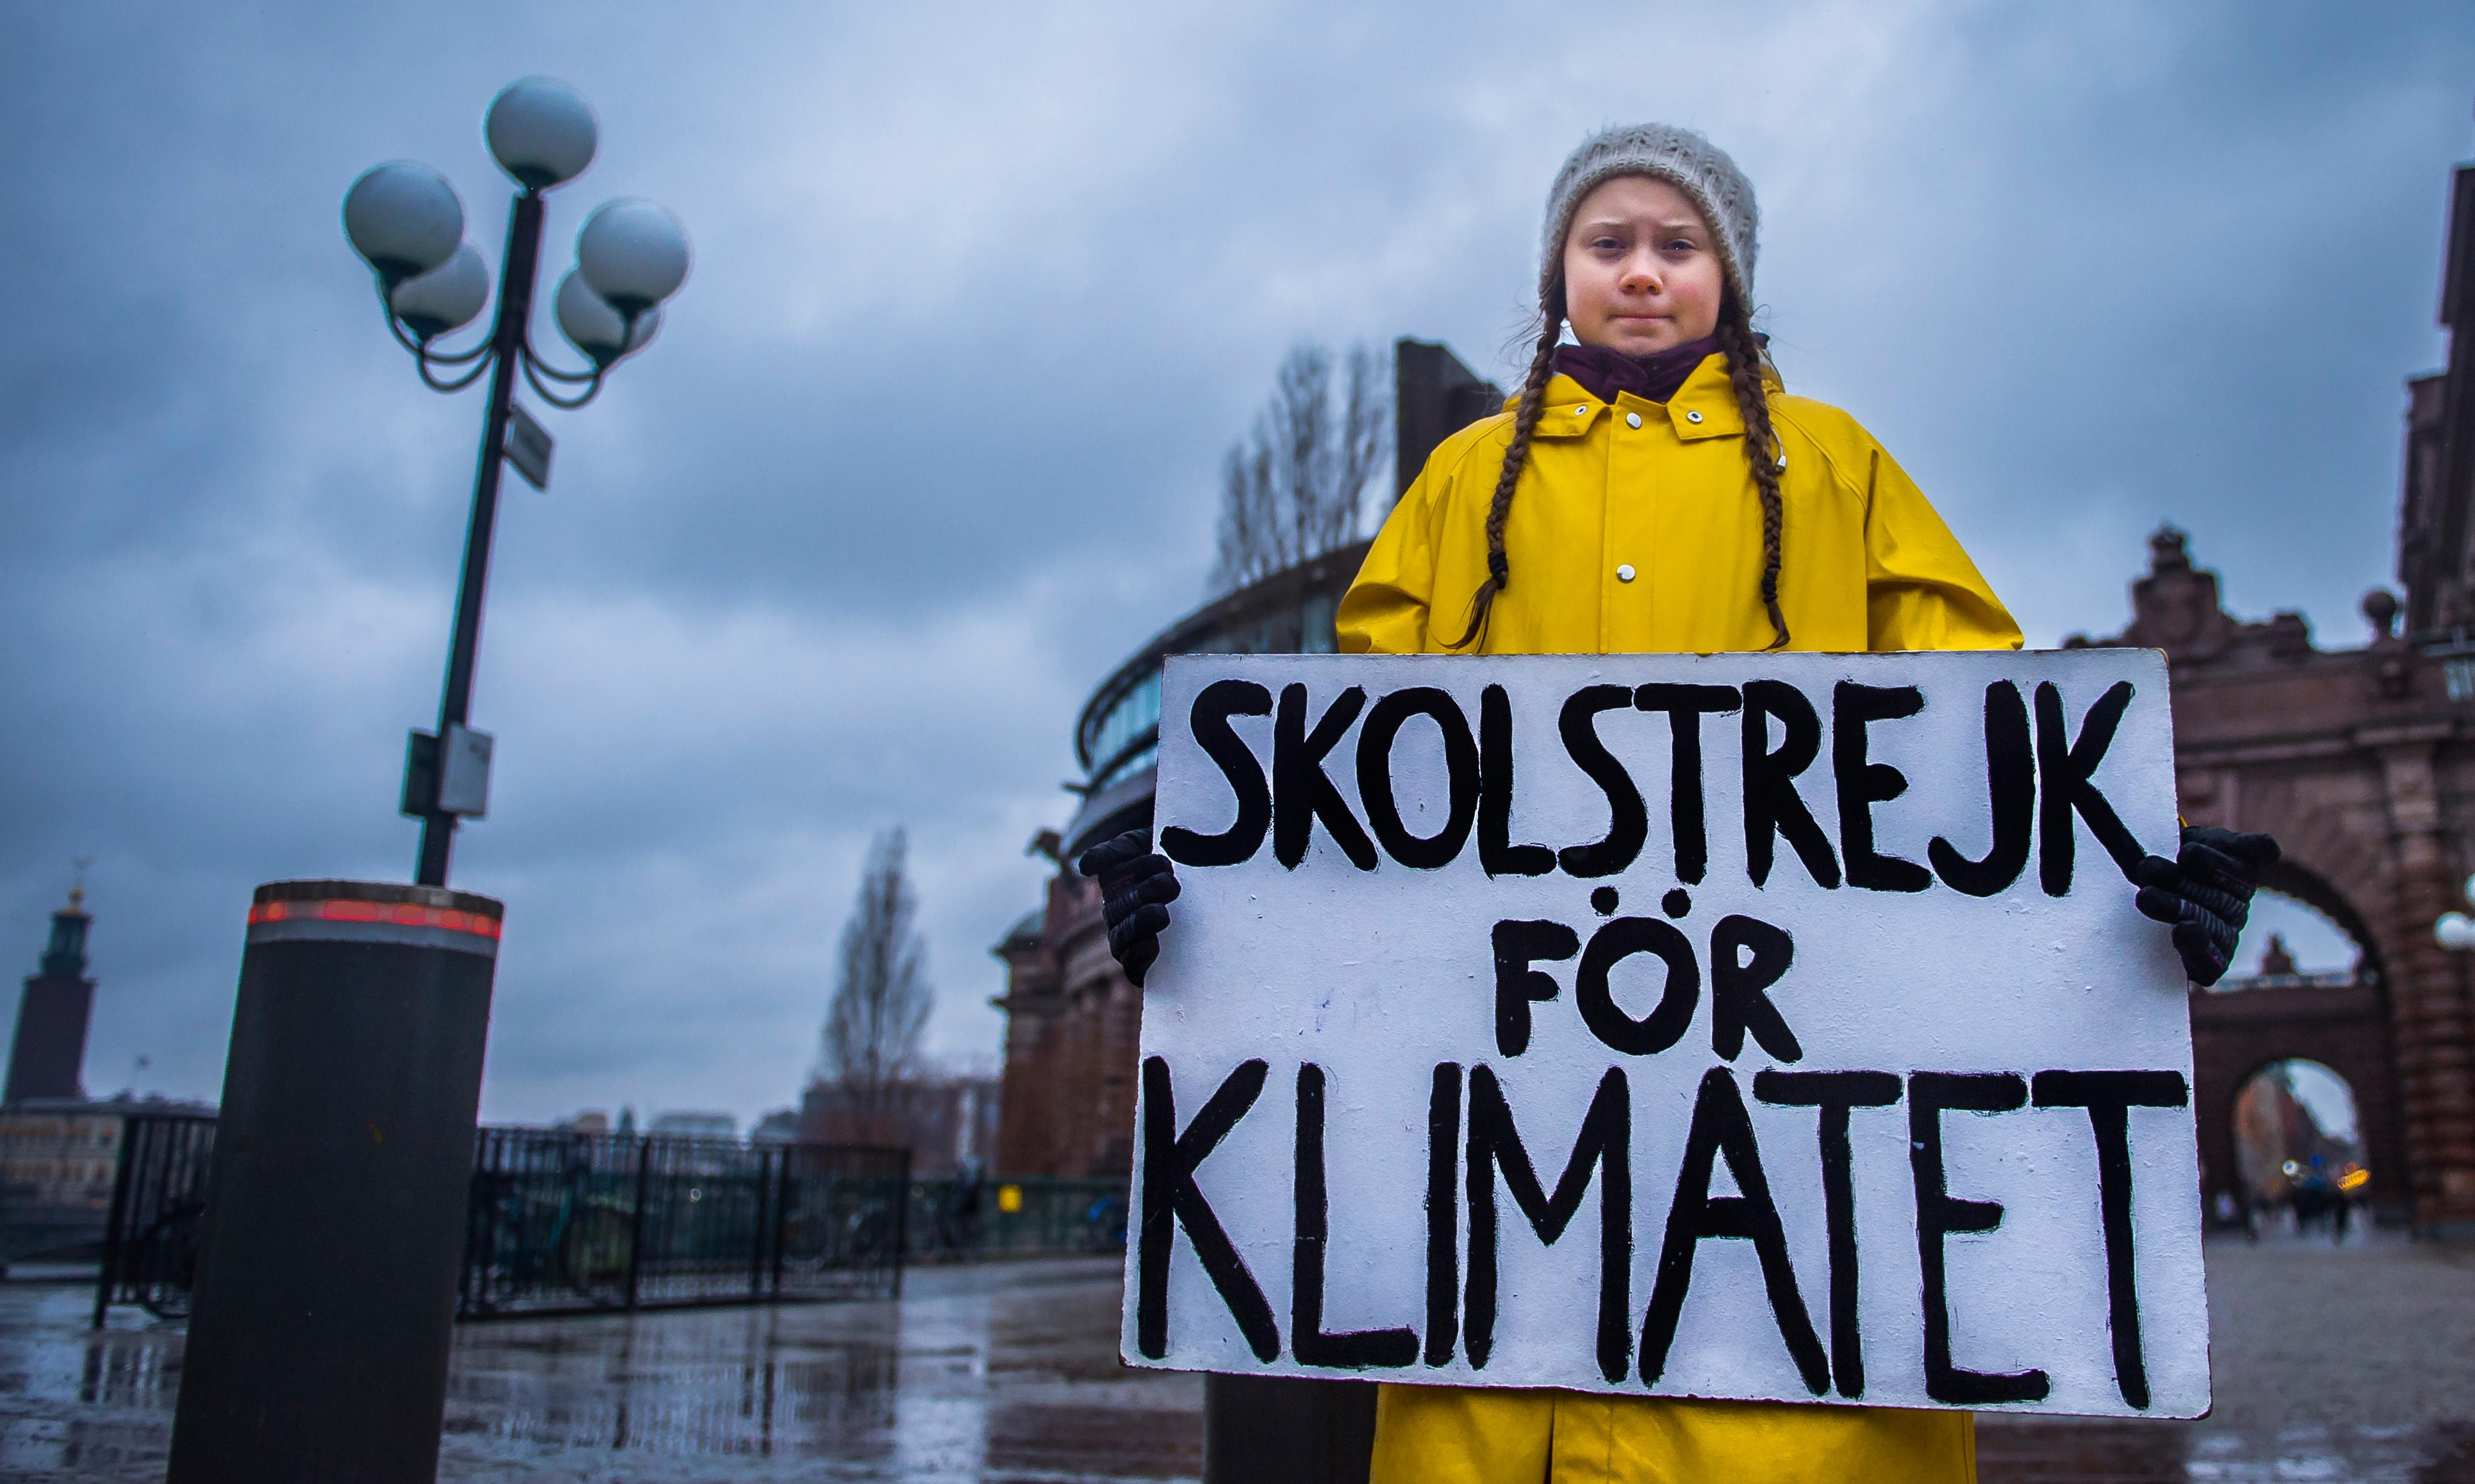 'Our leaders are like children,' school strike founder tells climate summit